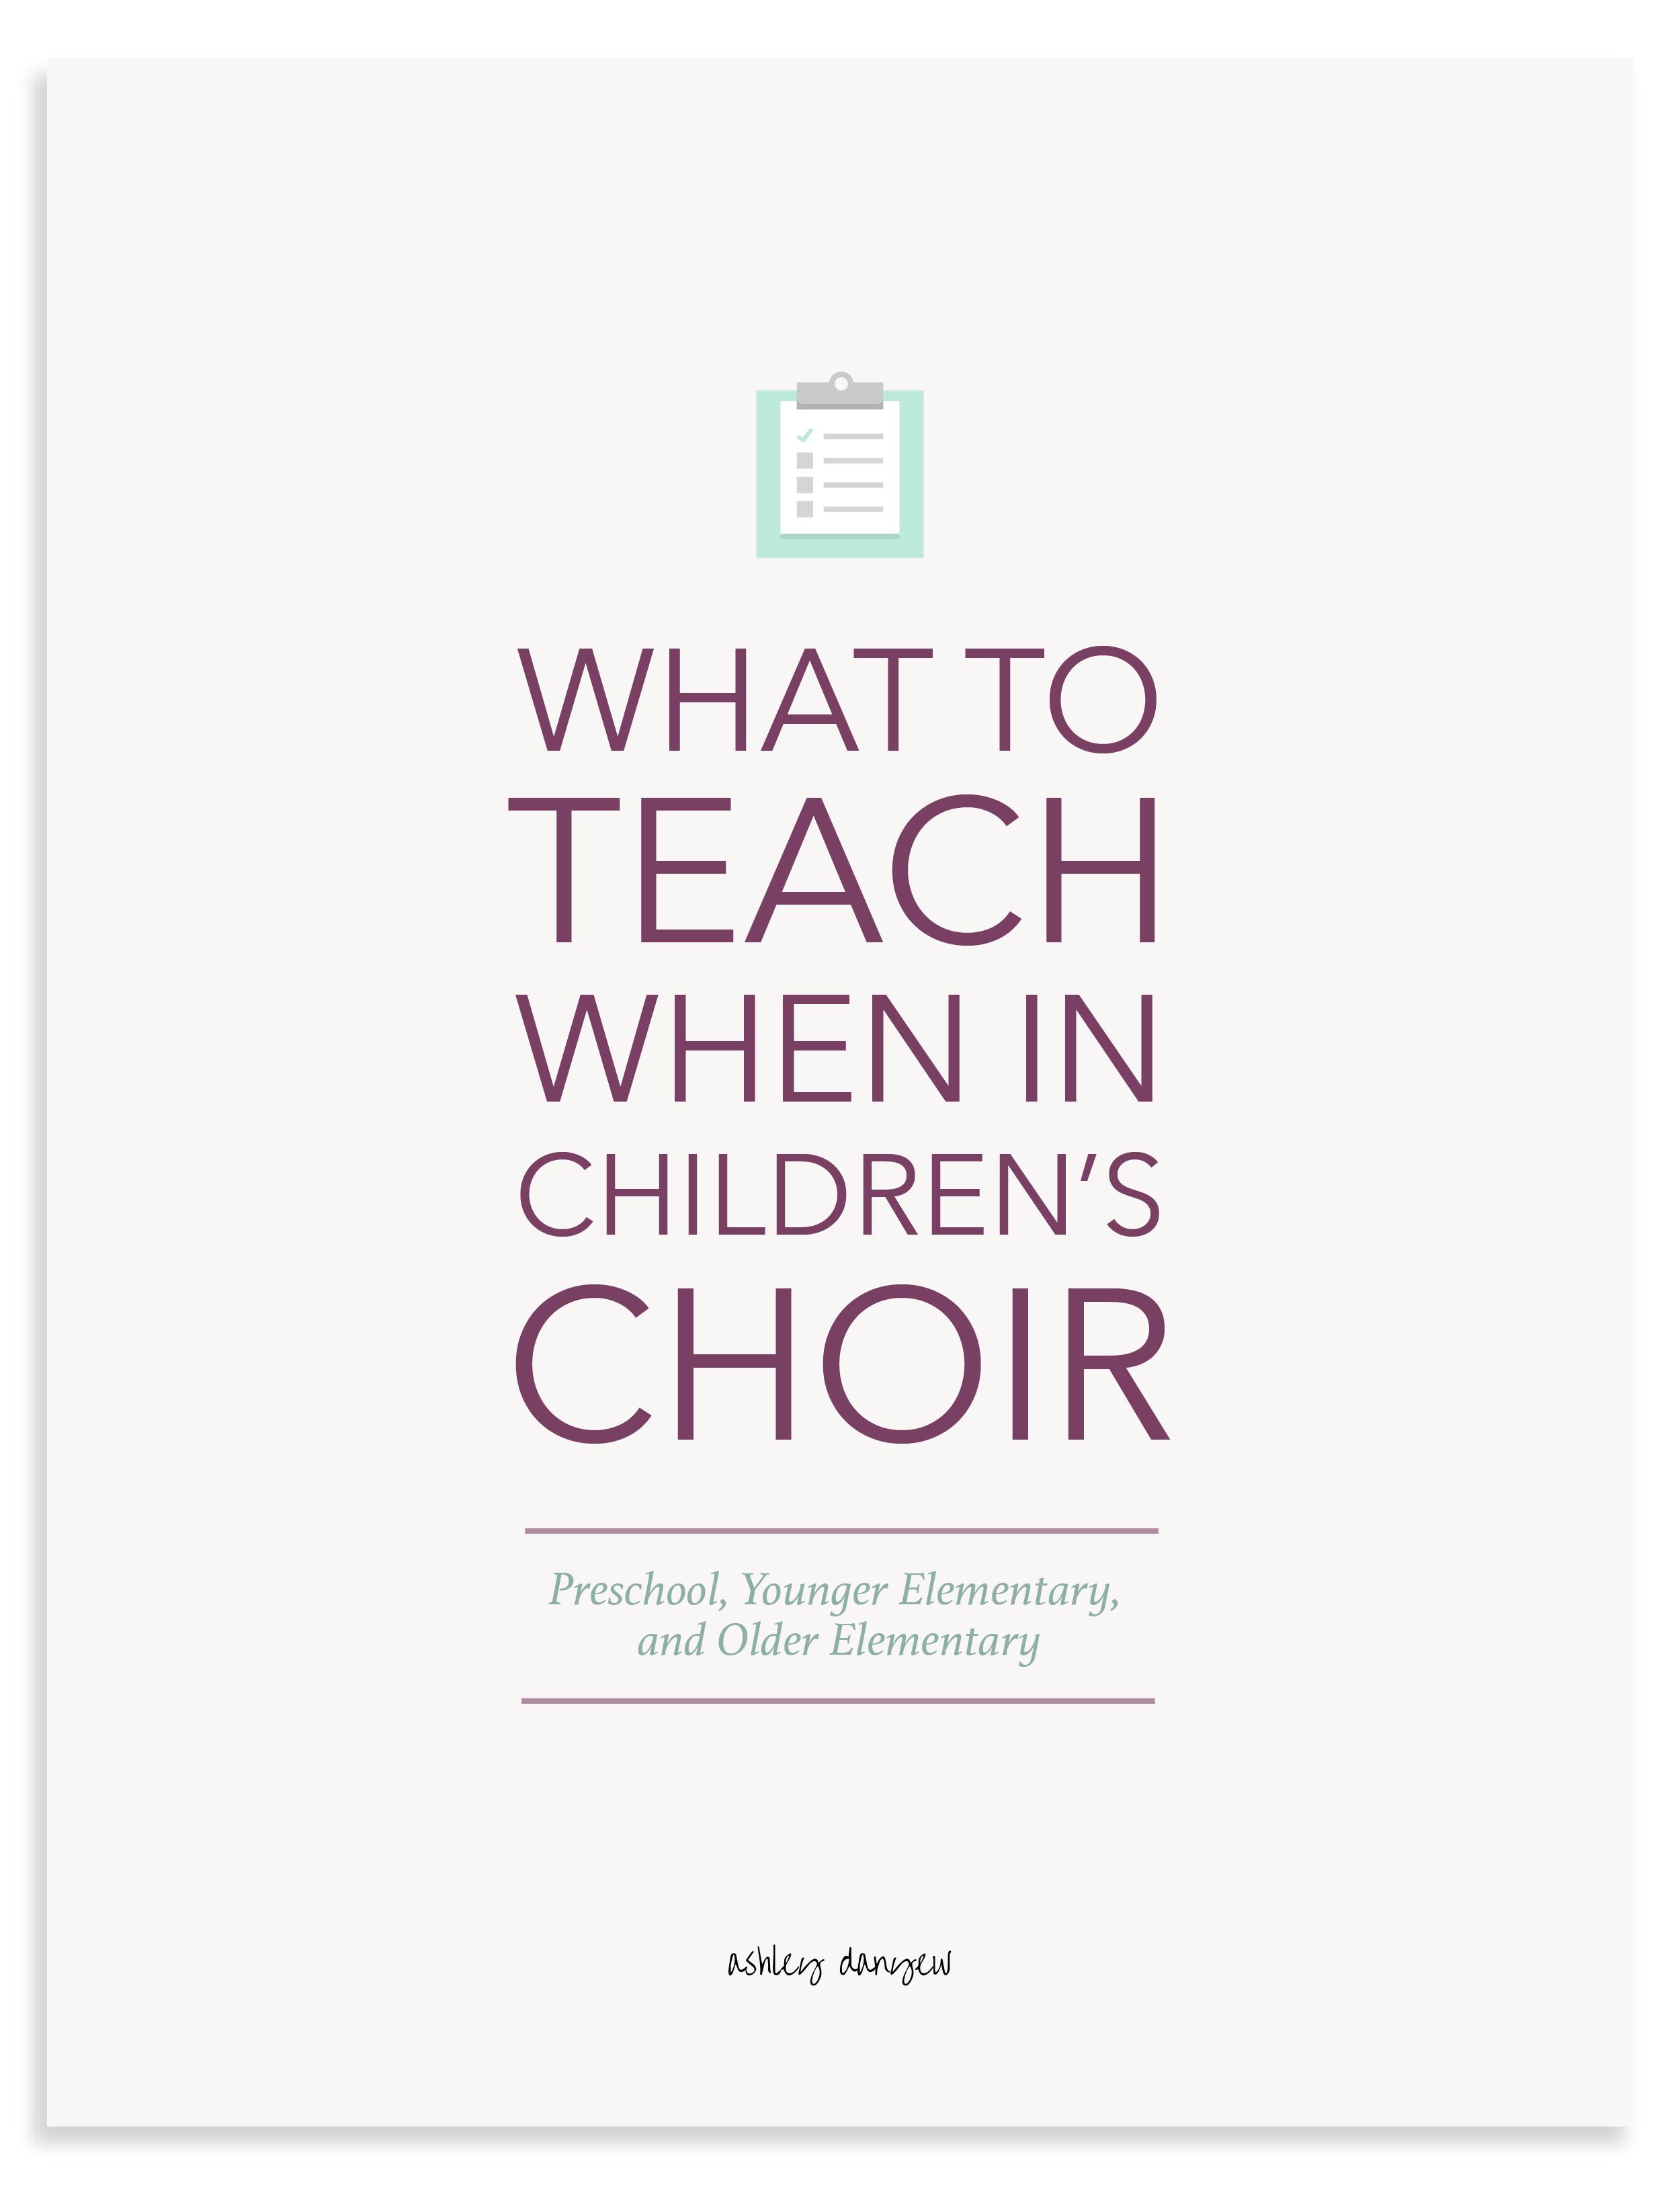 What to Teach When in Children's Choir eBook.png